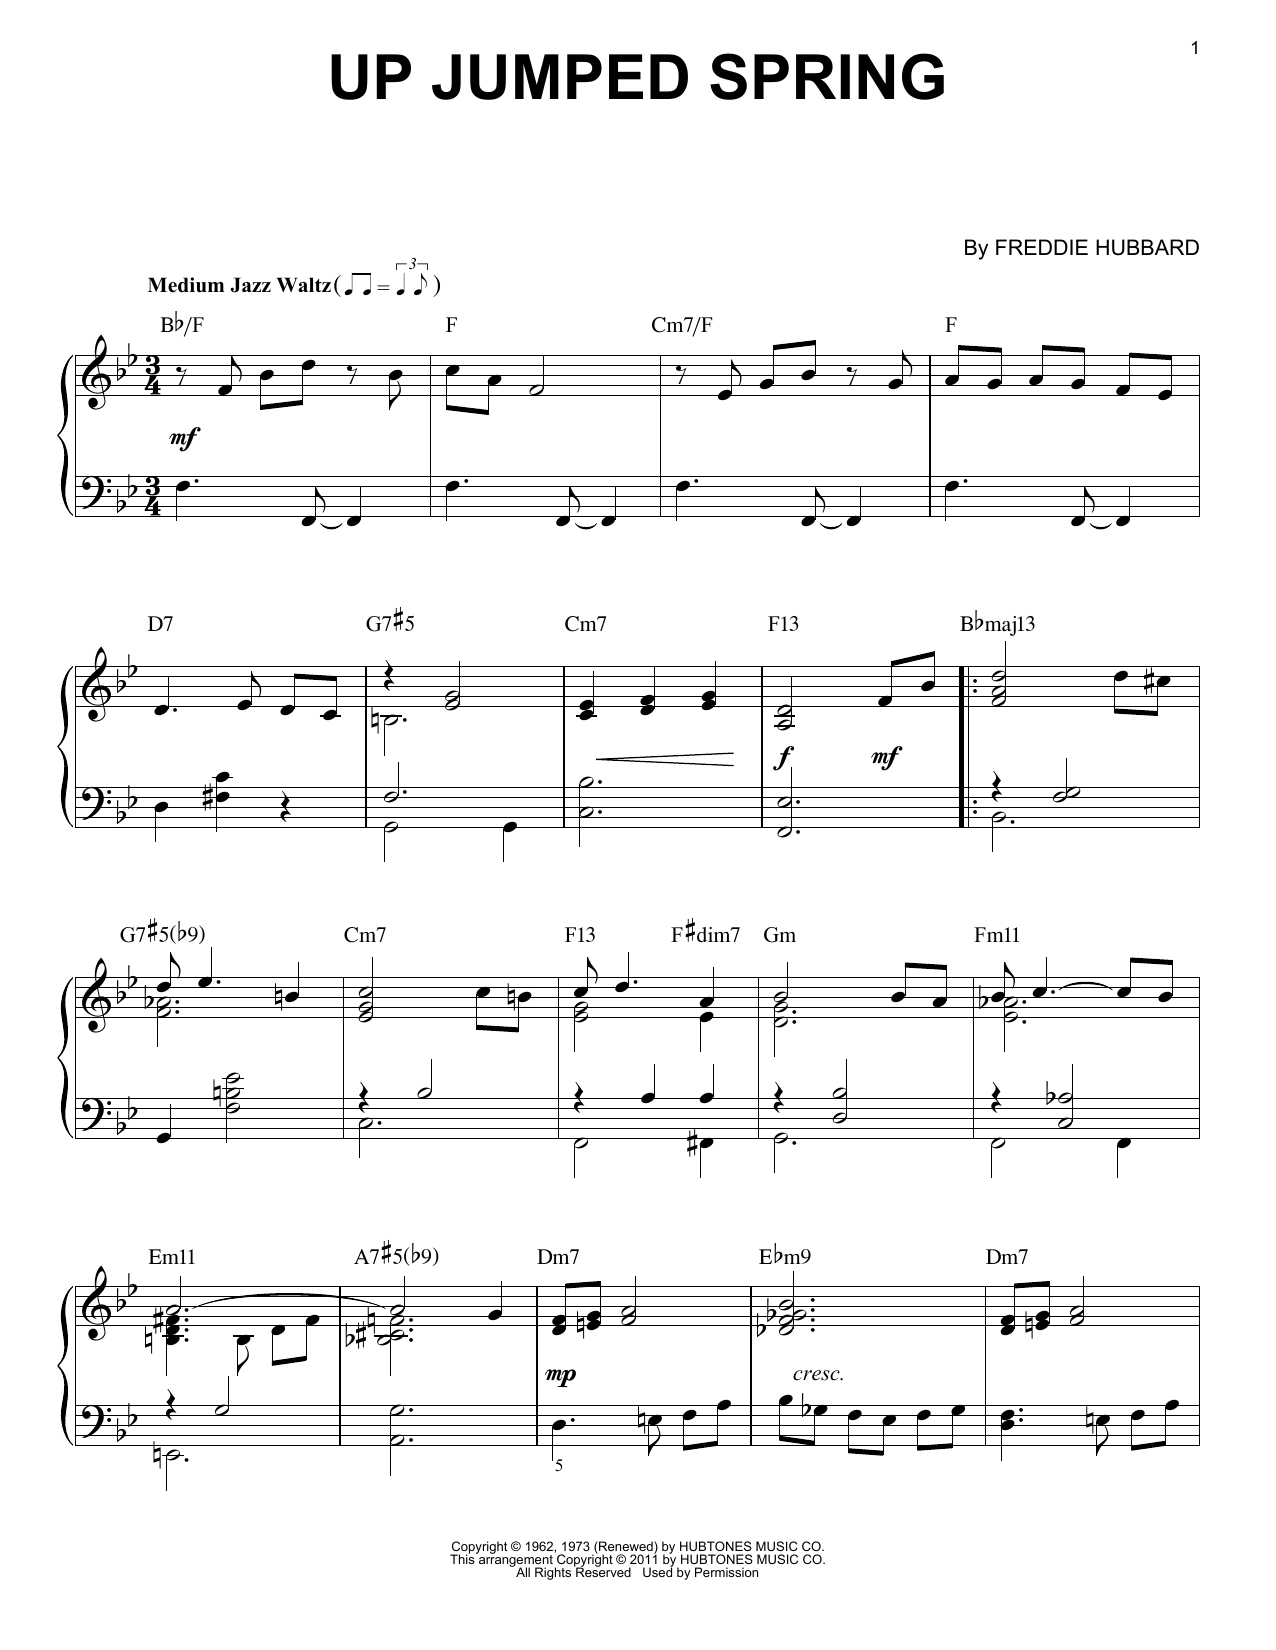 Up Jumped Spring Sheet Music | Freddie Hubbard | Piano Solo